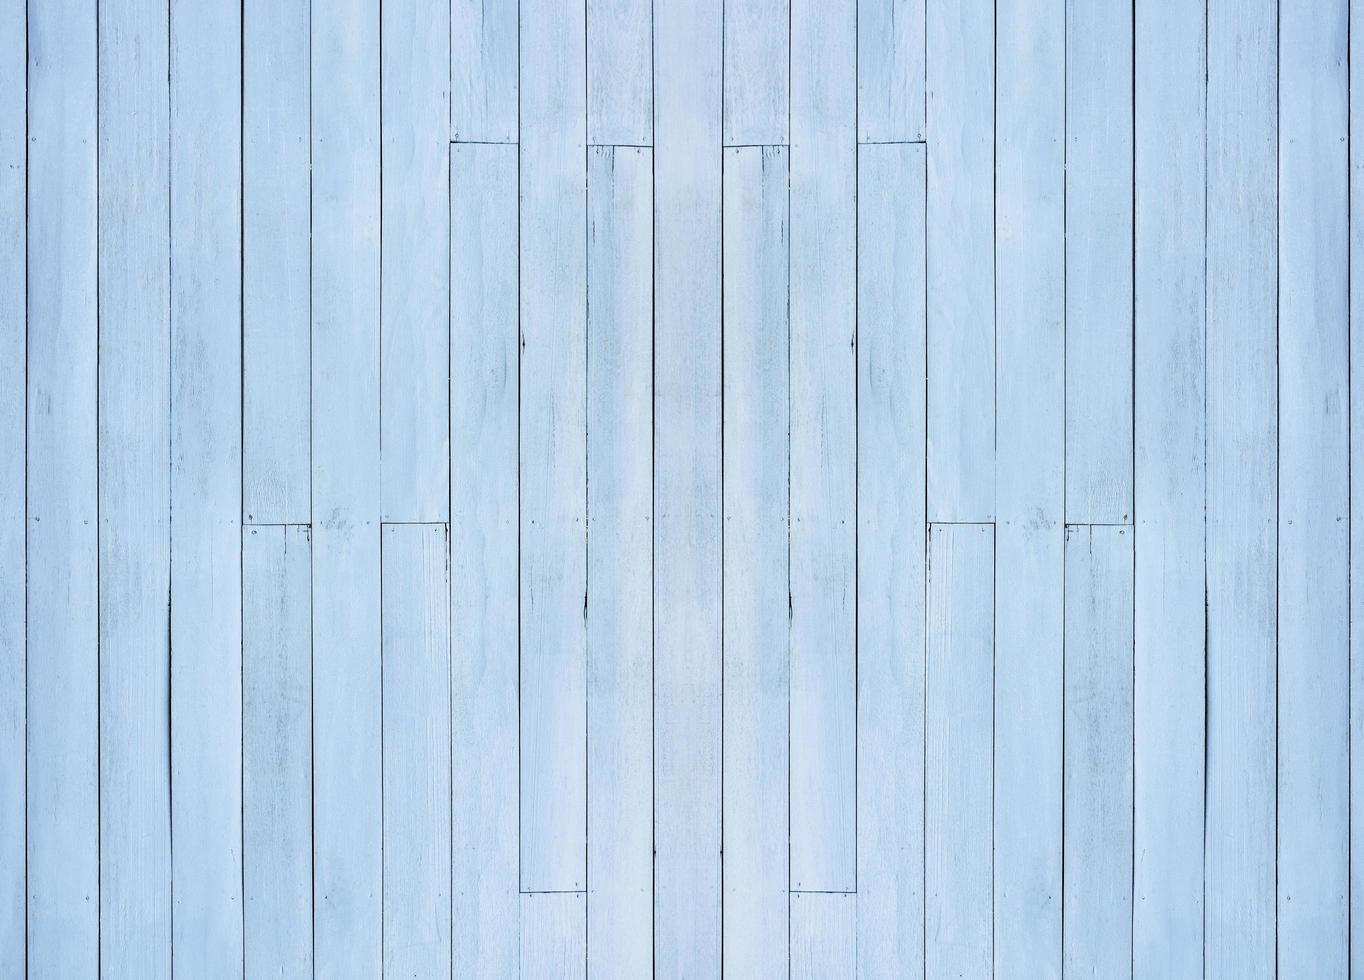 Abstract wood texture background photo